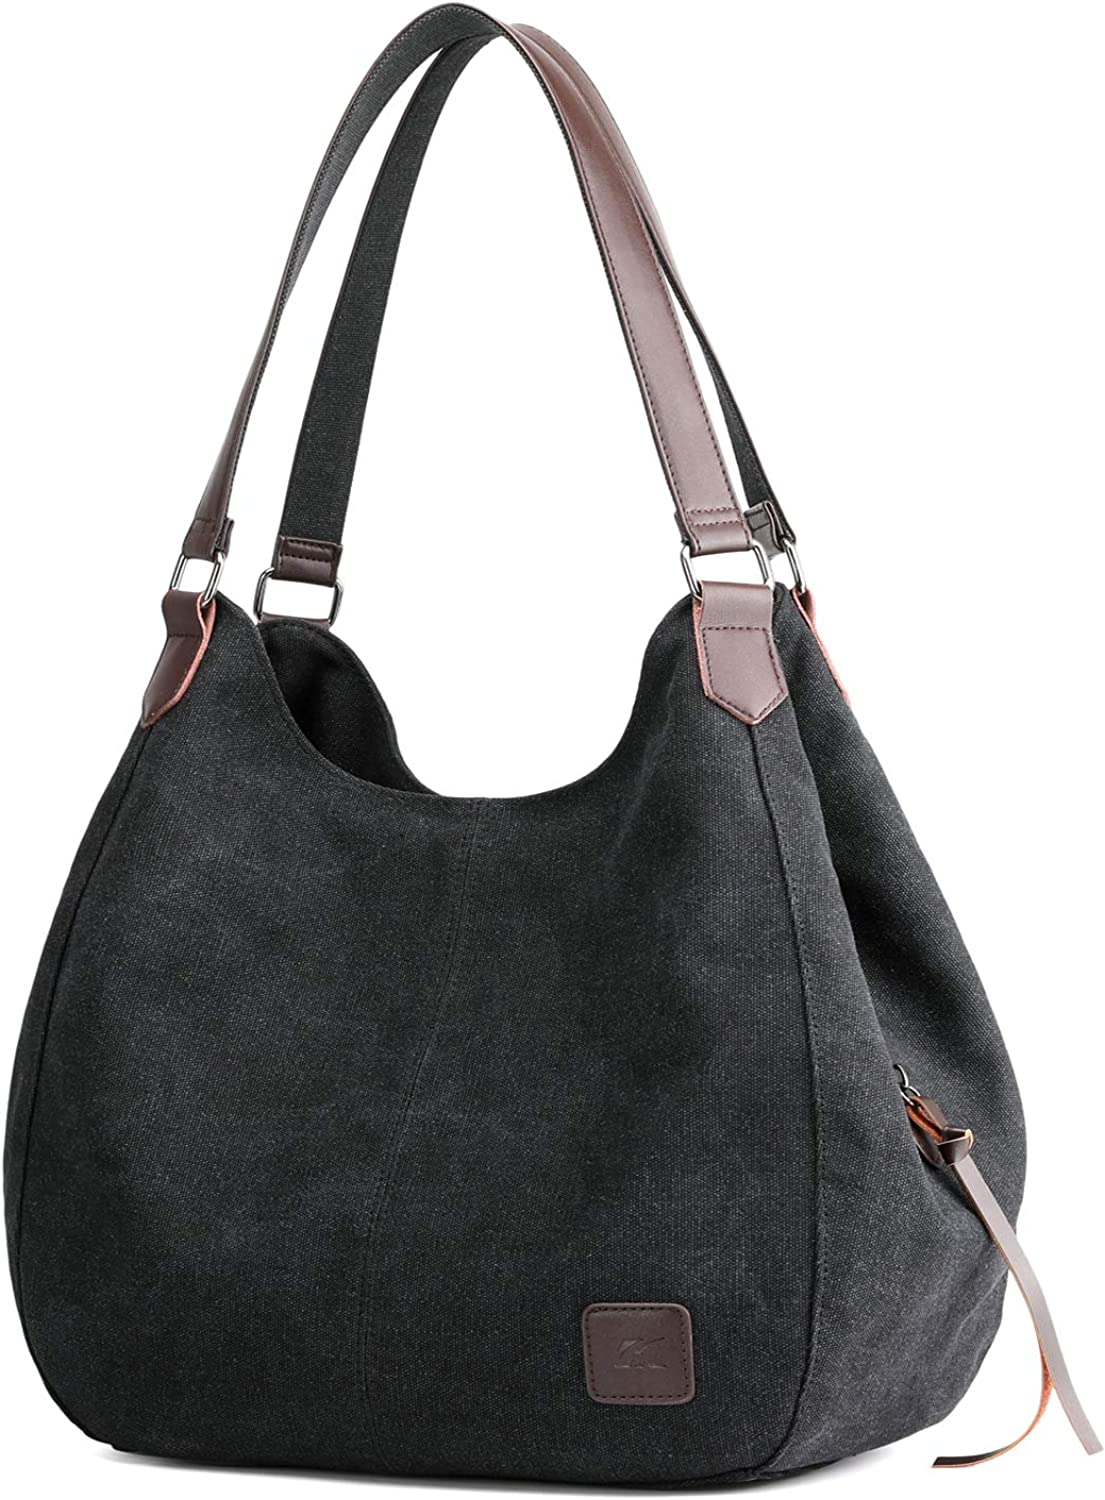 Hobo Purses for Women Canvas Tote Shoulder Bags Vegan Handbags with Compartments